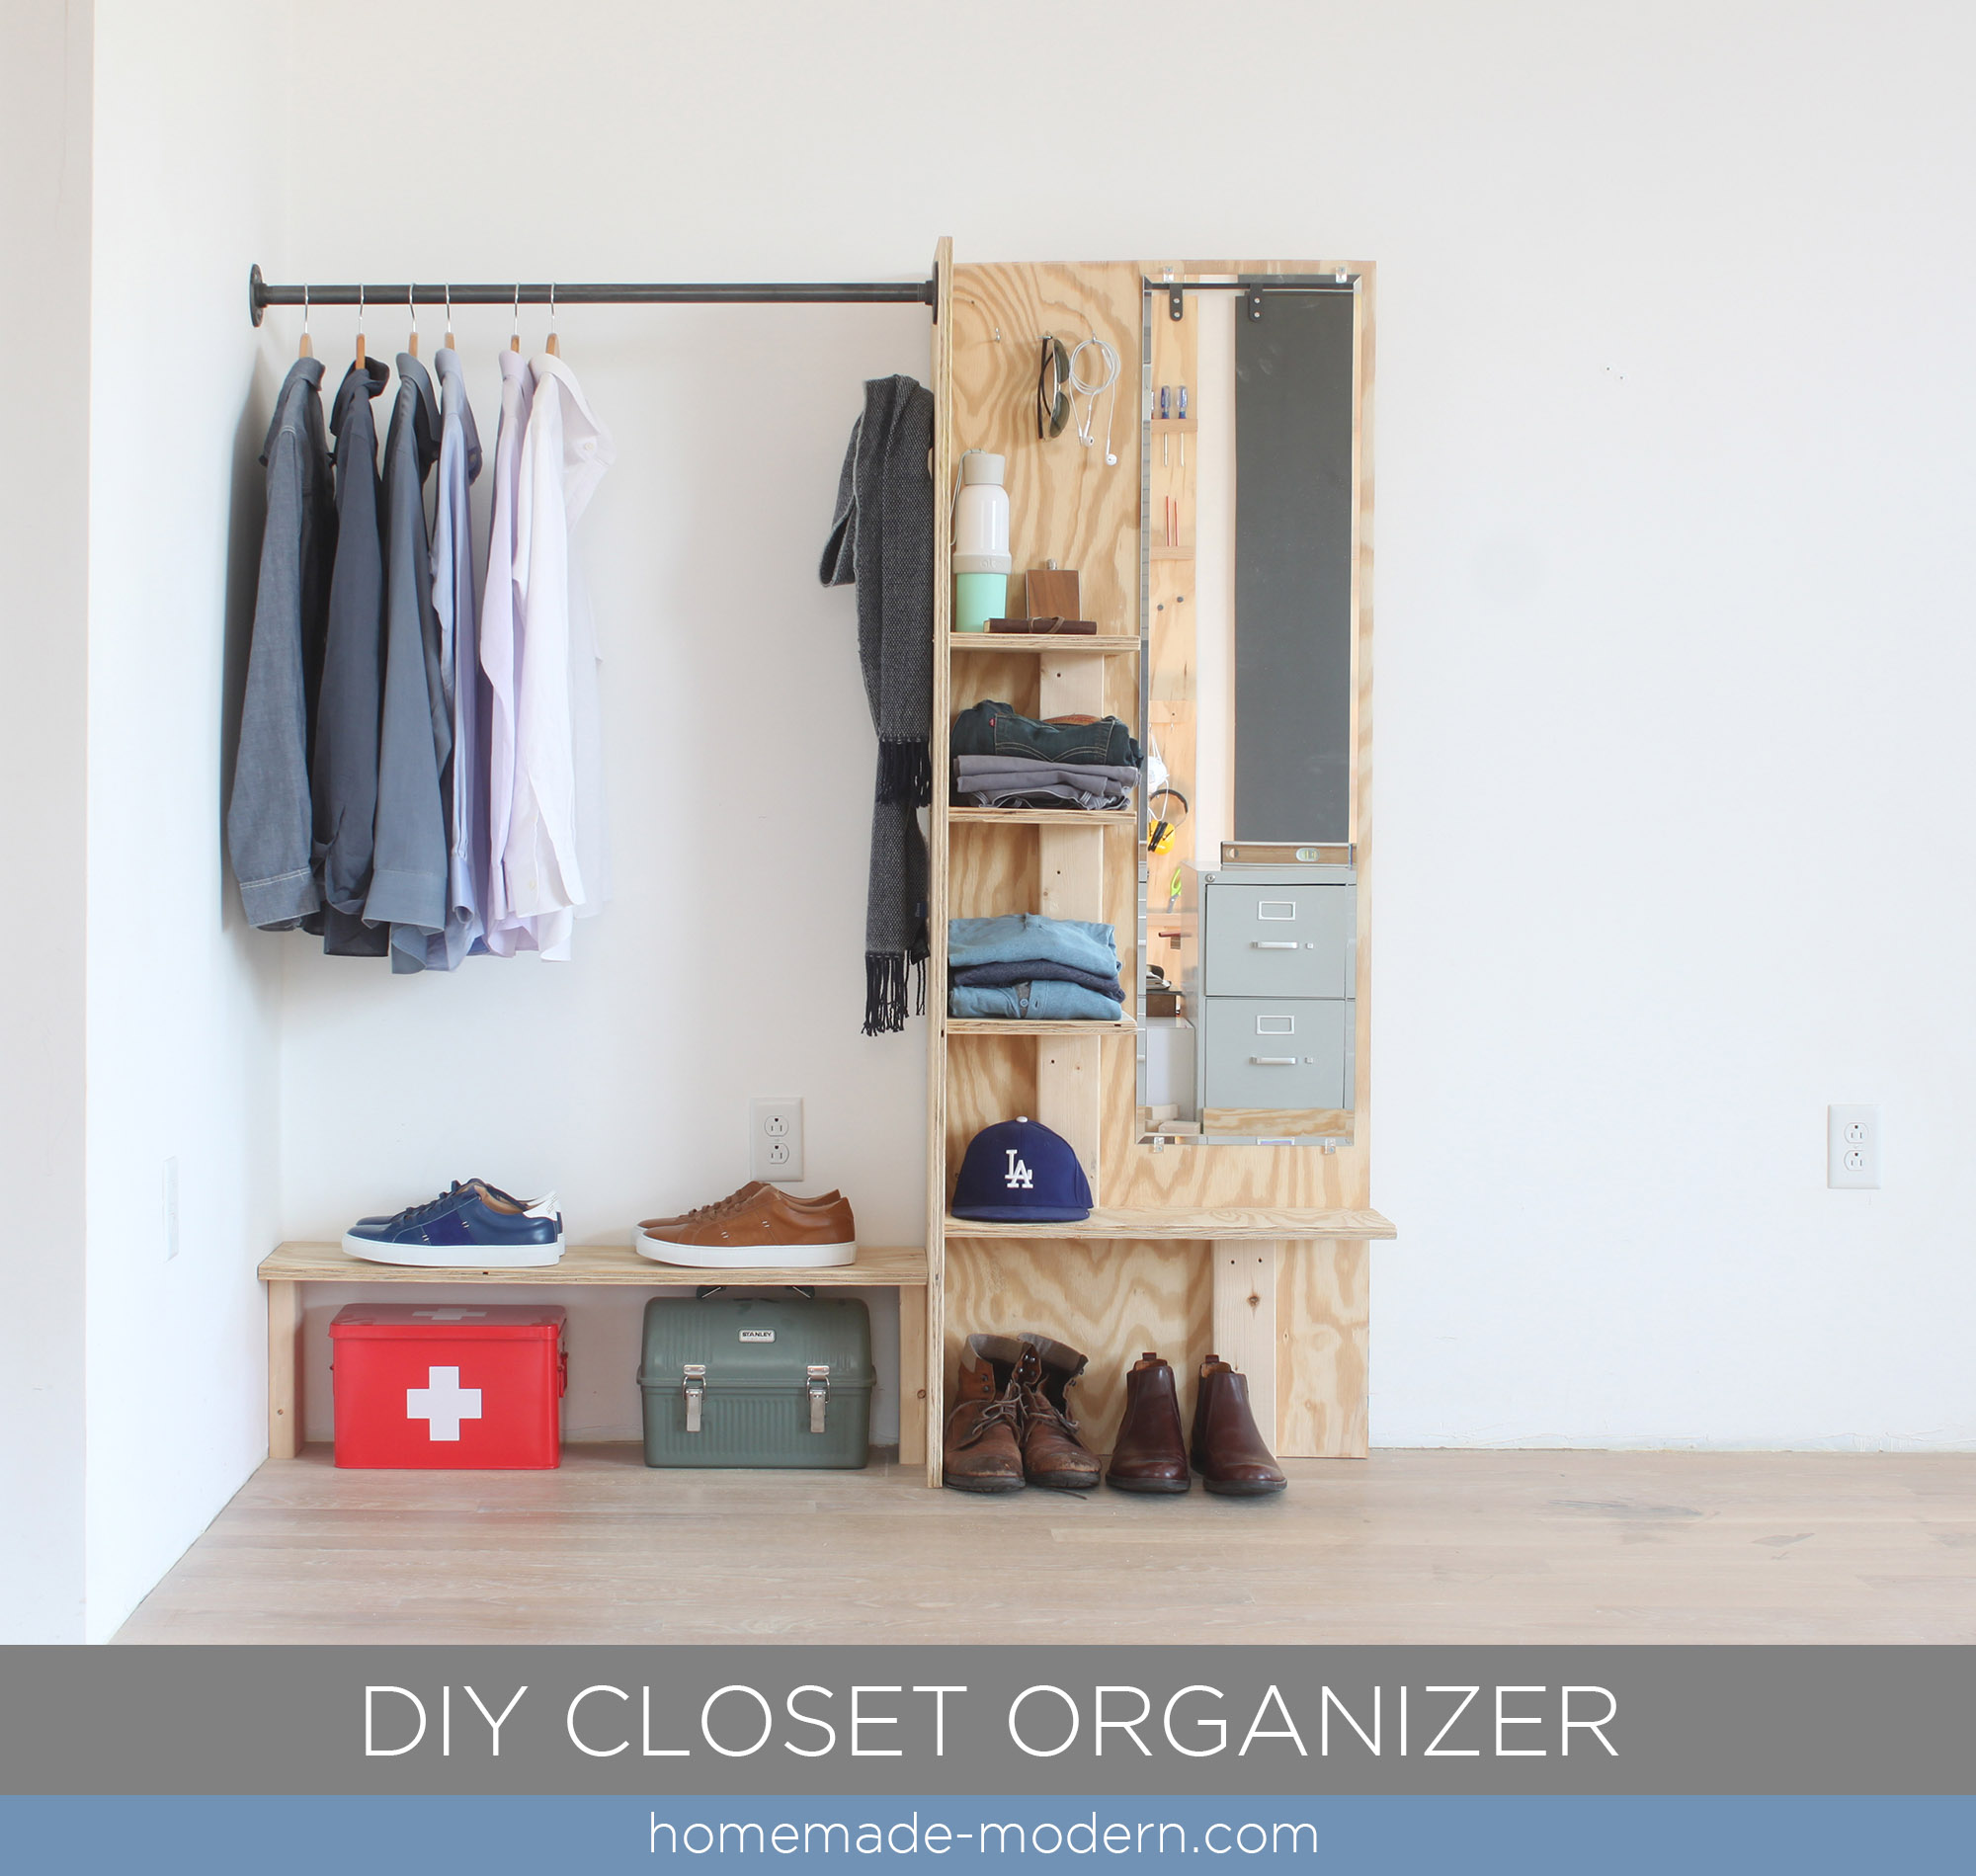 This DIY Closet Organizer Is Made From Materials Available At Home Depot.  Full Instructions Can